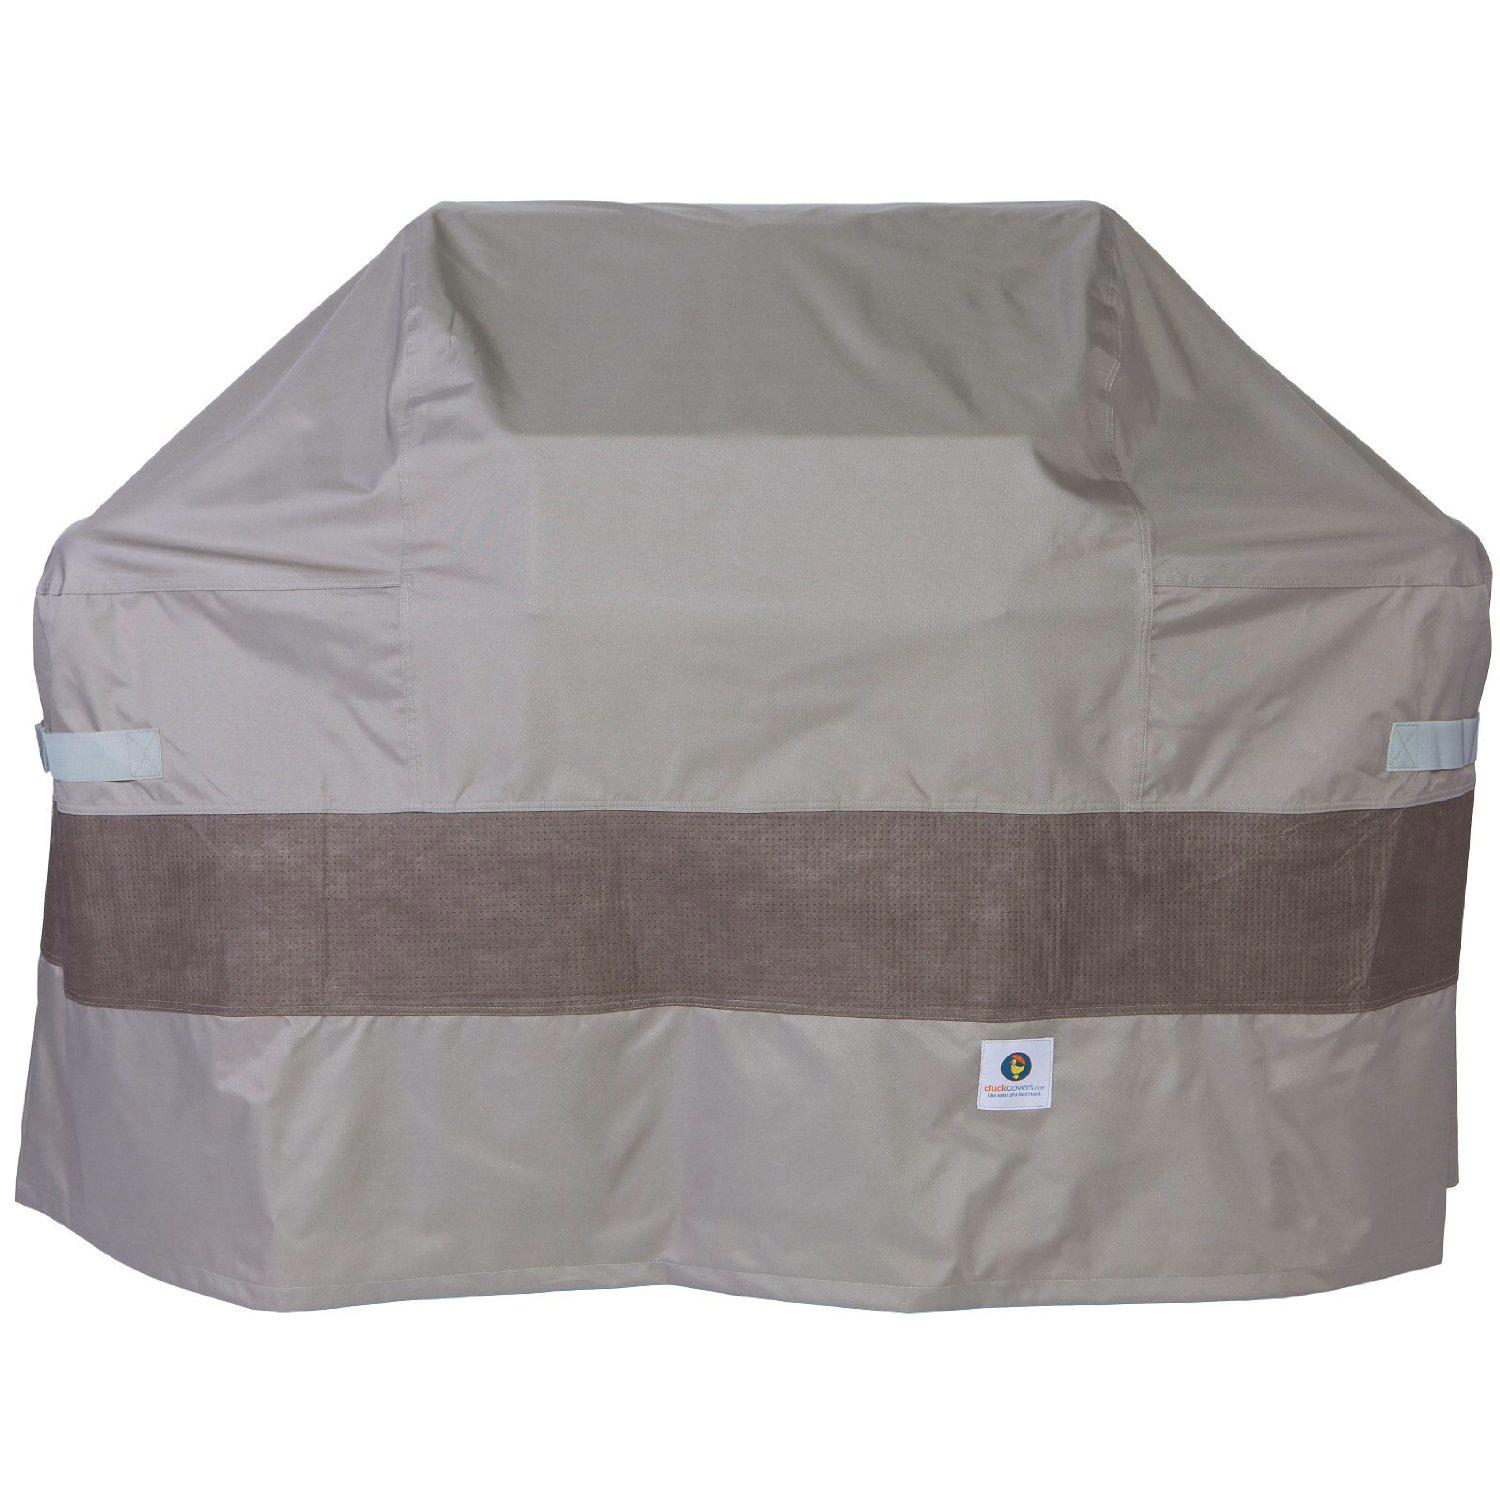 amazon com duck covers elite bbq grill cover 61 inch outdoor